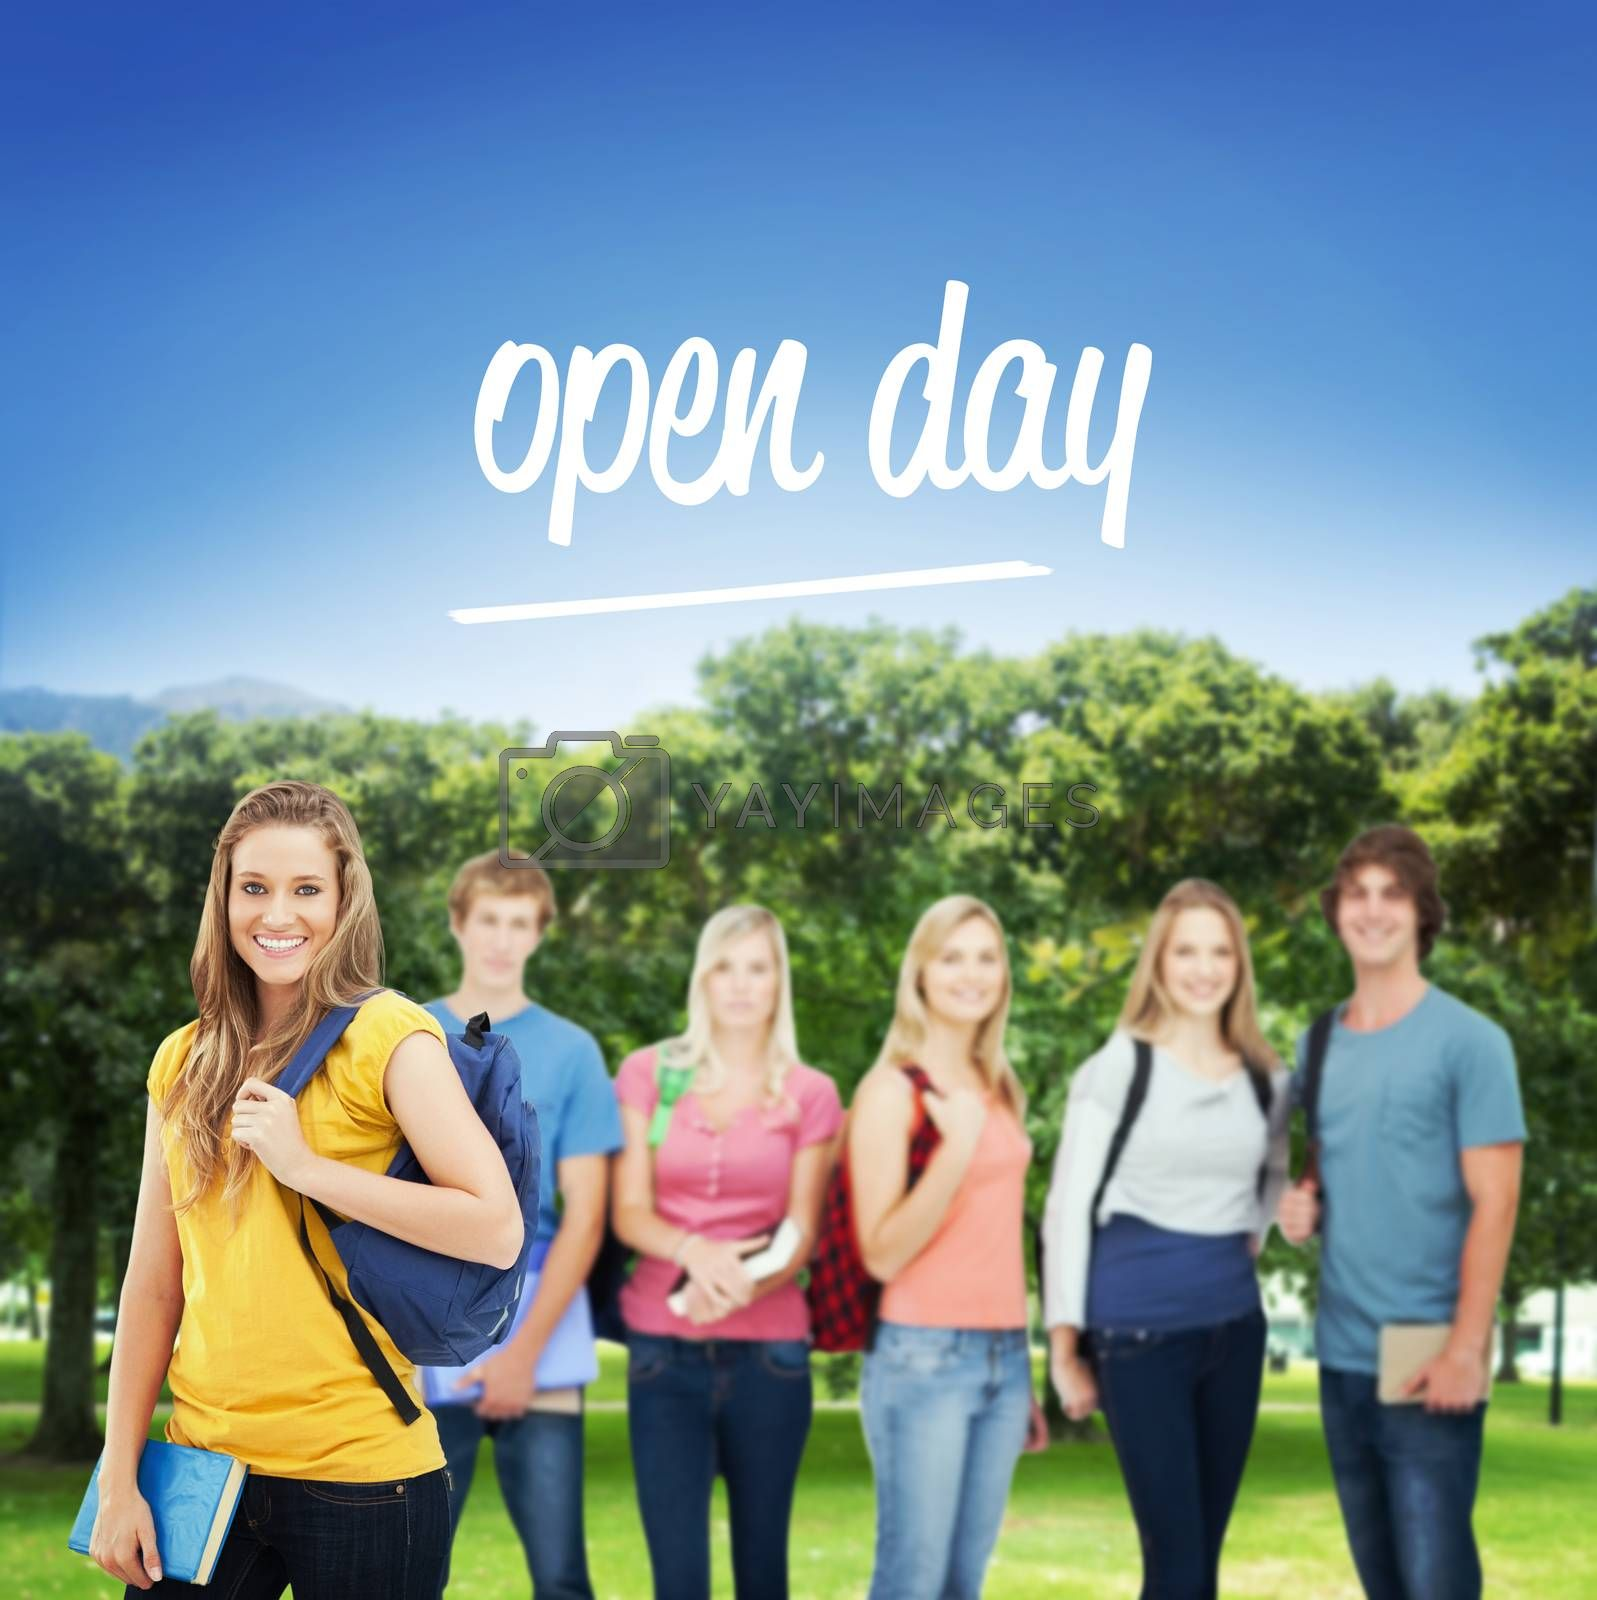 Open day against park by Wavebreakmedia